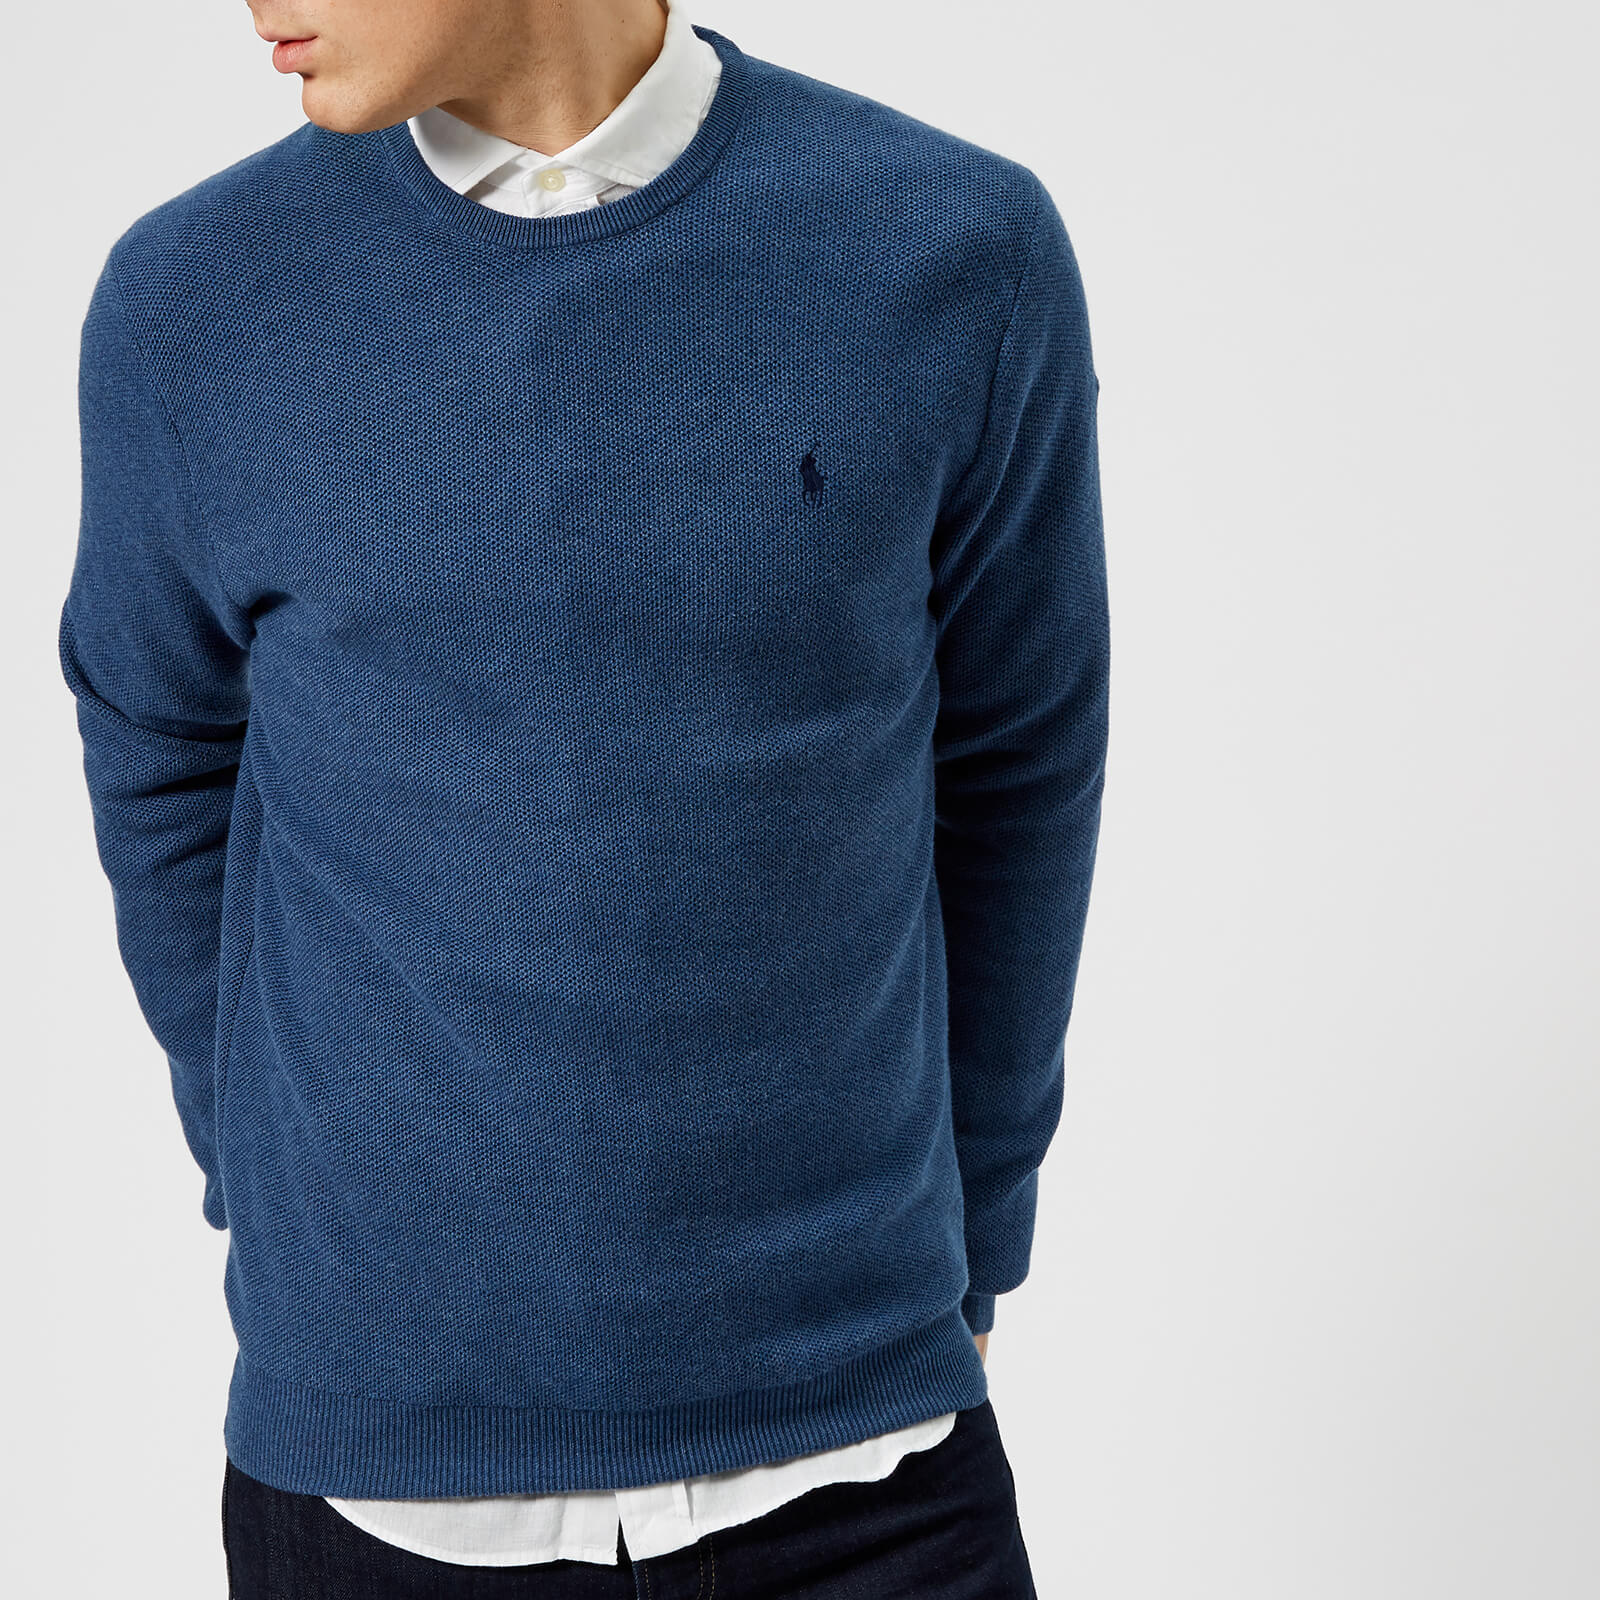 a3c21db88a3 Polo Ralph Lauren Men s Pima Cotton Crew Neck Sweater - Blue - Free UK  Delivery over £50